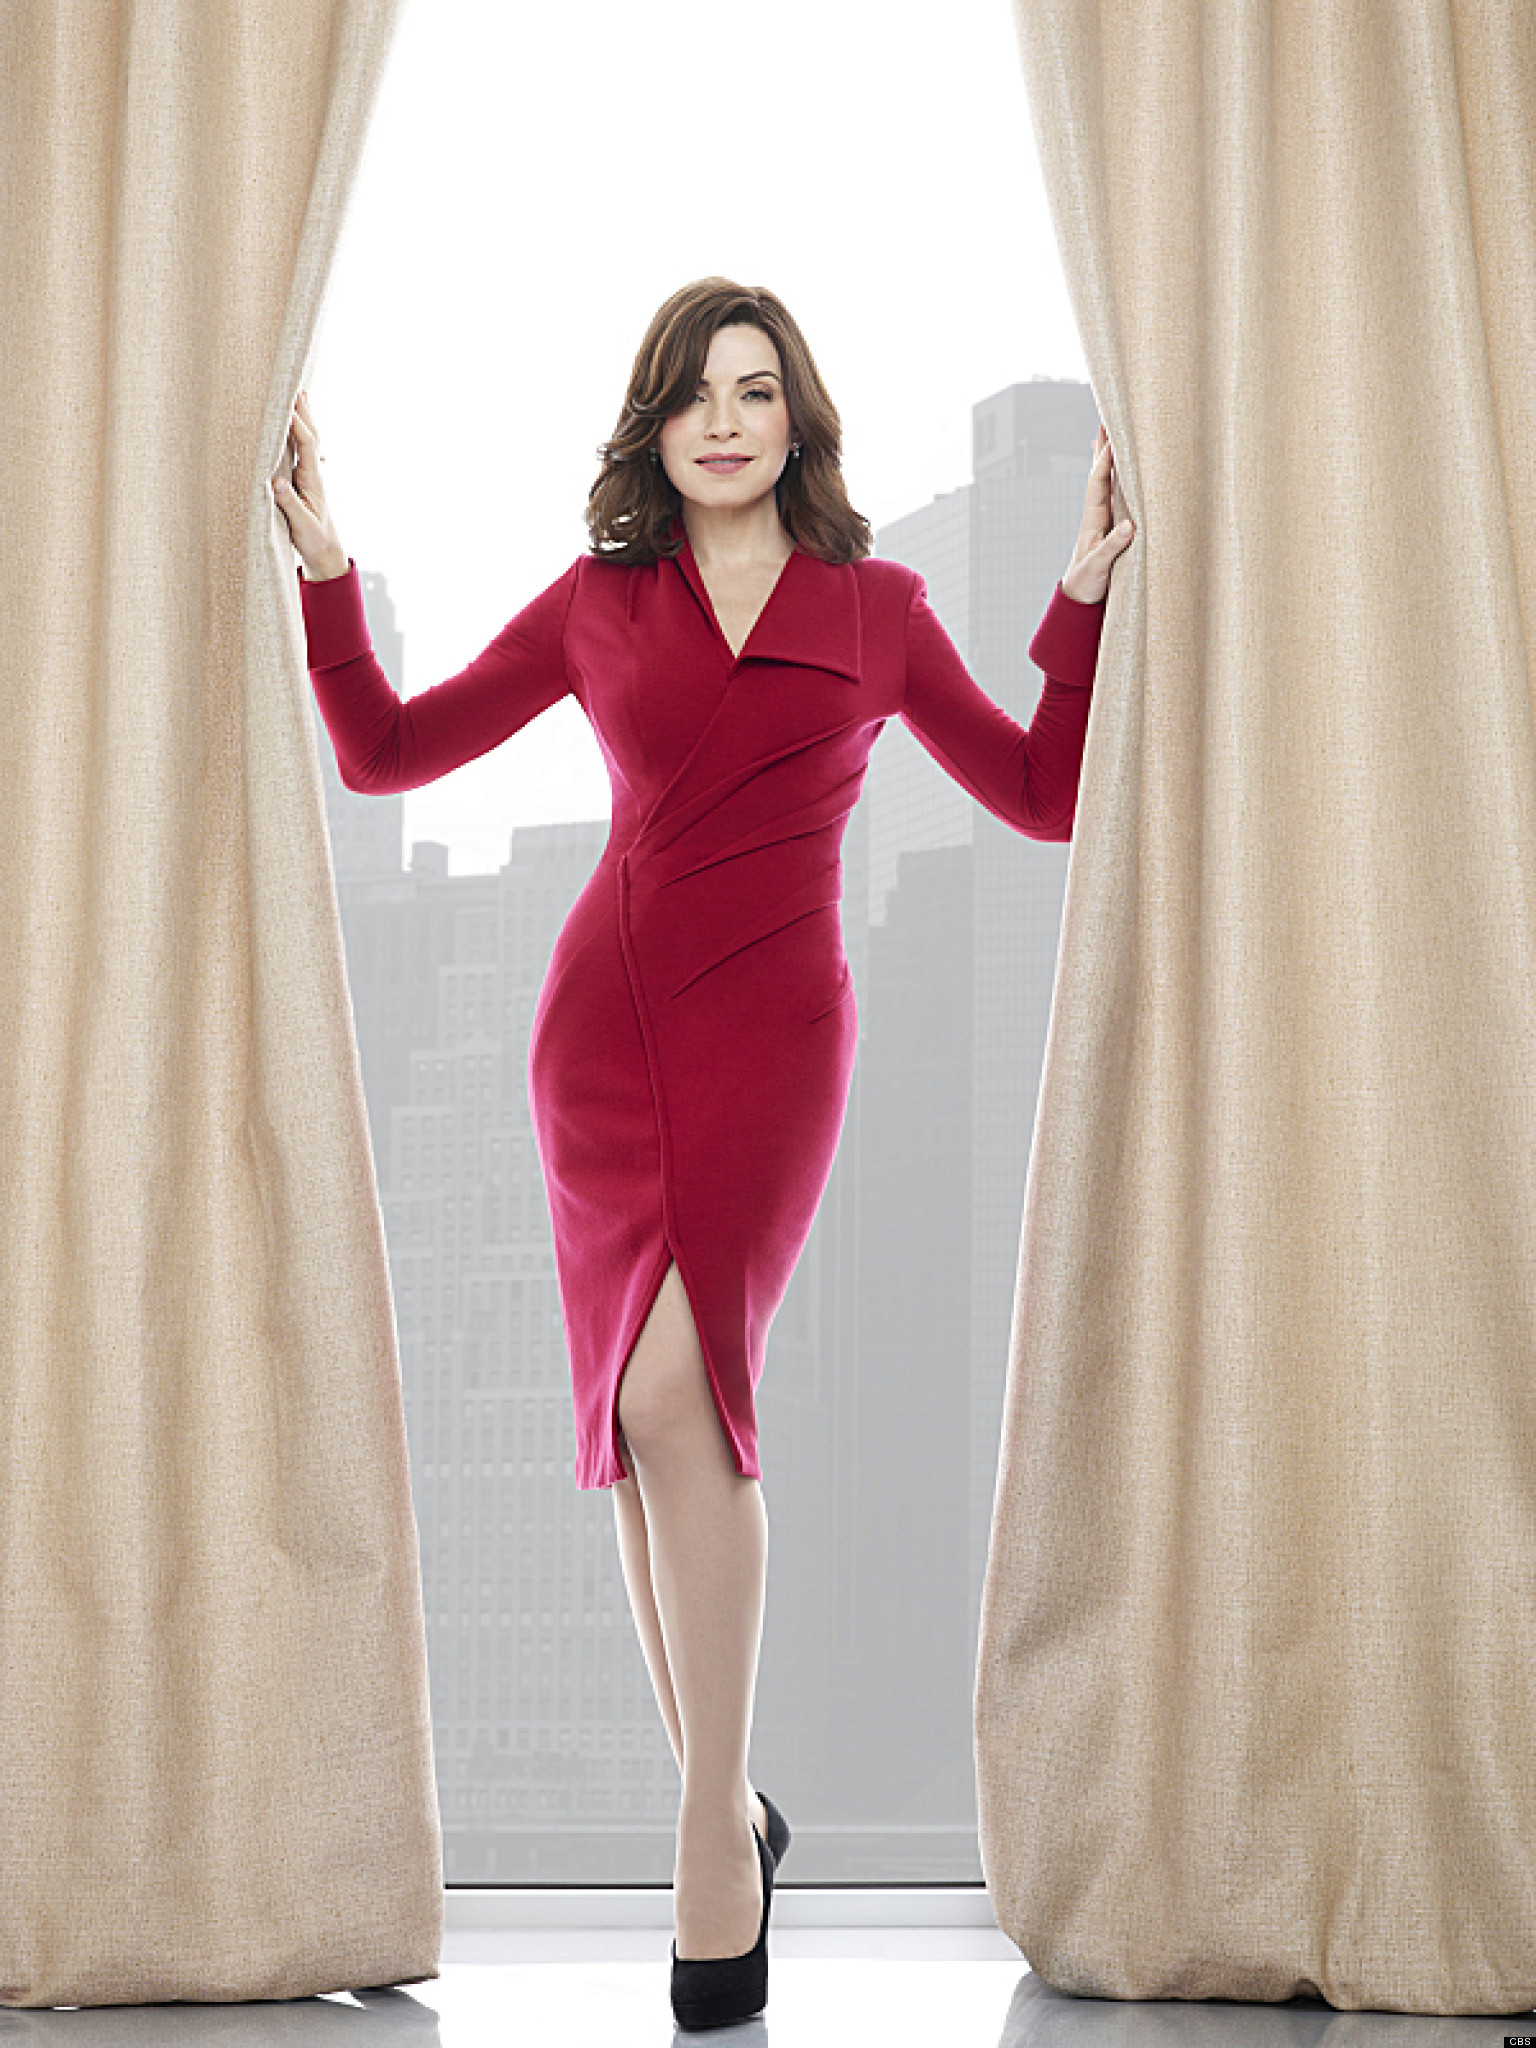 The Good Wife O-JULIANNA-MARGULIES-THE-GOOD-WIFE-SEASON-4-FINALE-facebook